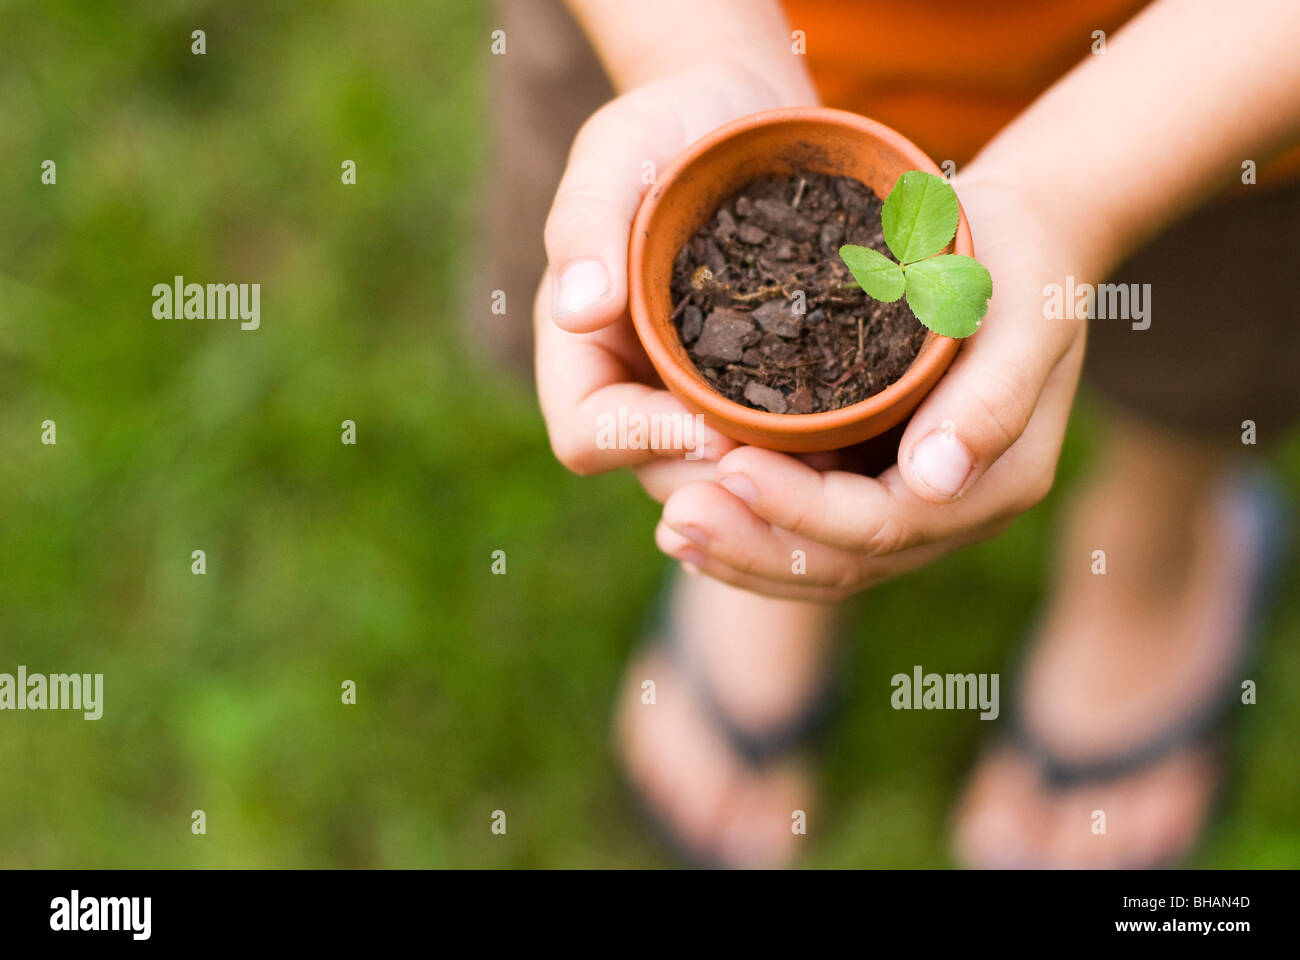 Boy holding potted plant Photo Stock